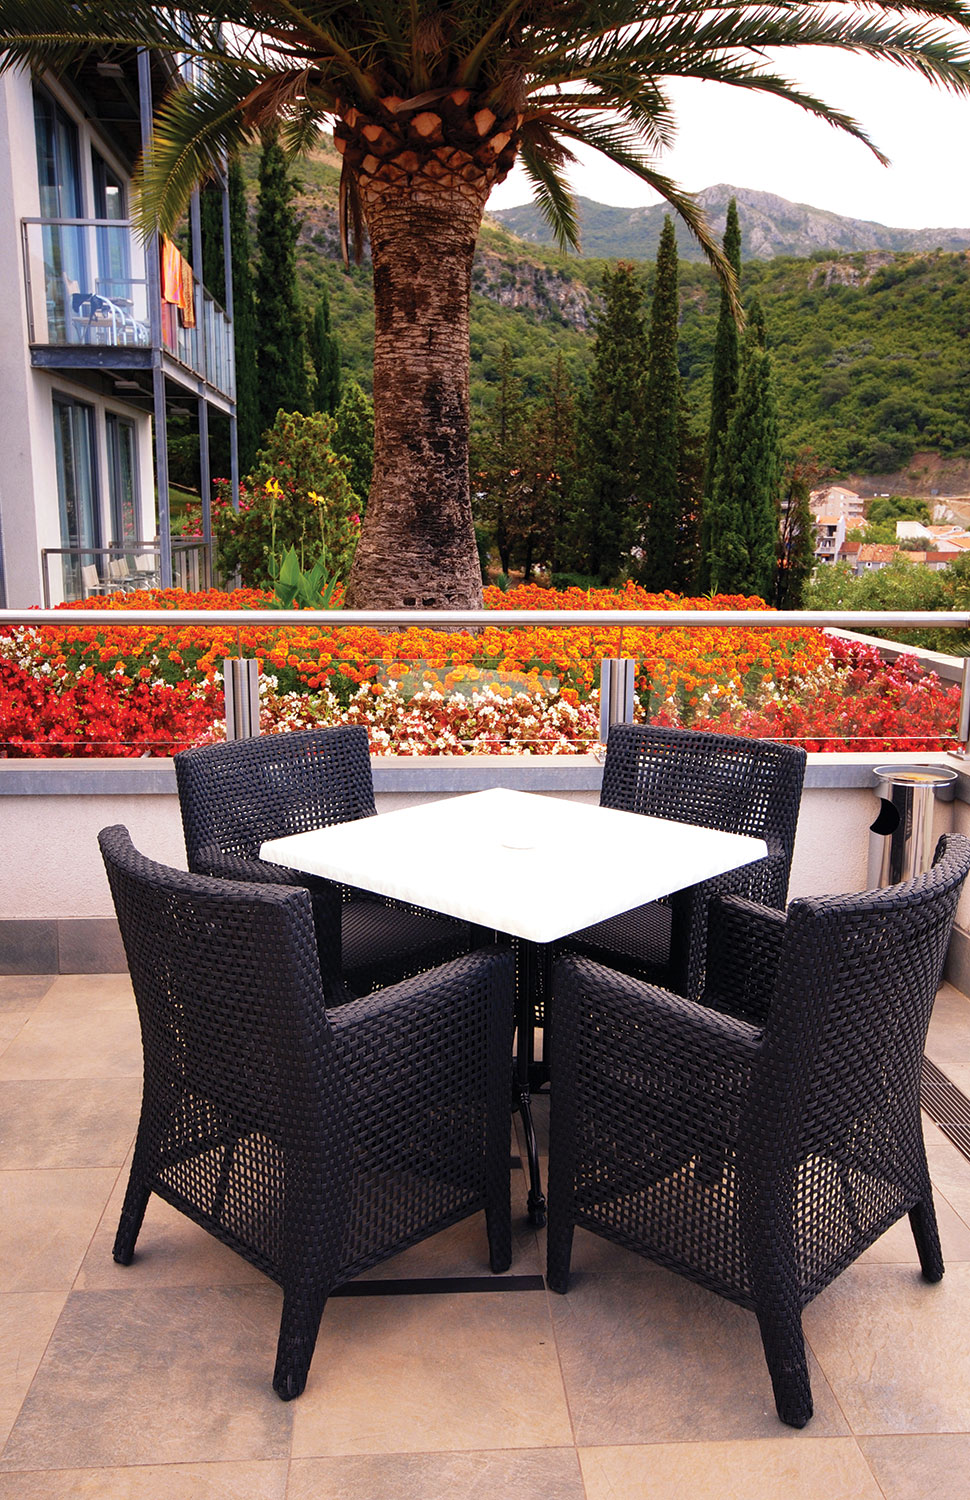 Five Trends in Outdoor Living   Hardware Retailing on Outdoor Living Shop id=33831